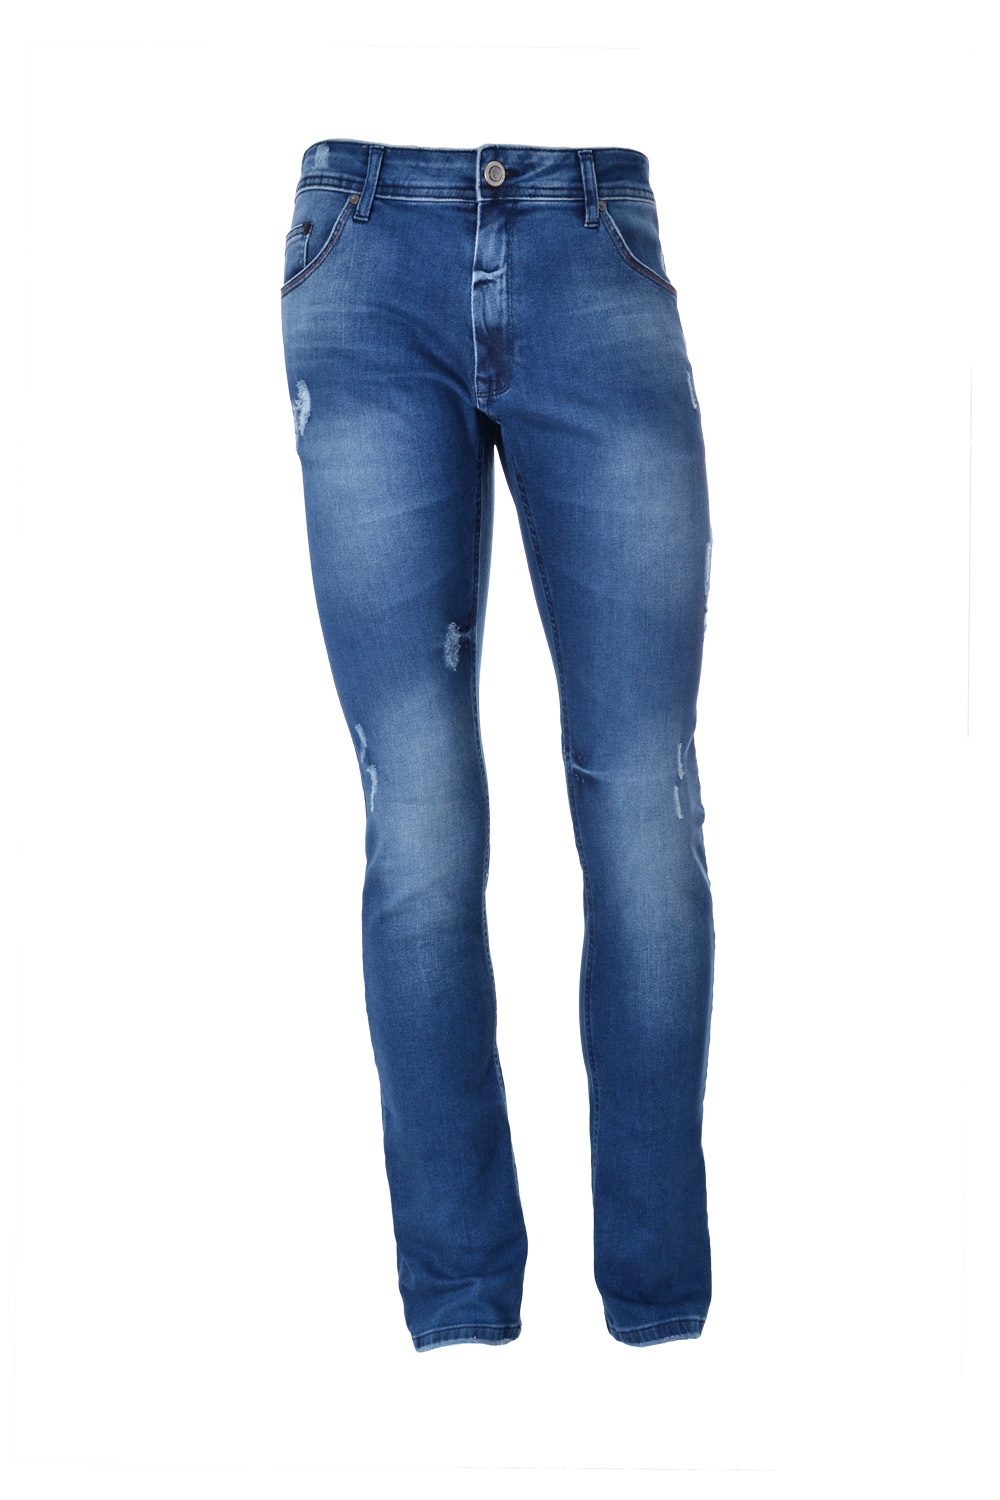 CALÇA JEANS BLUES SLIM ALGODAO & ELASTANO STRETCH STONED AZUL MEDIO